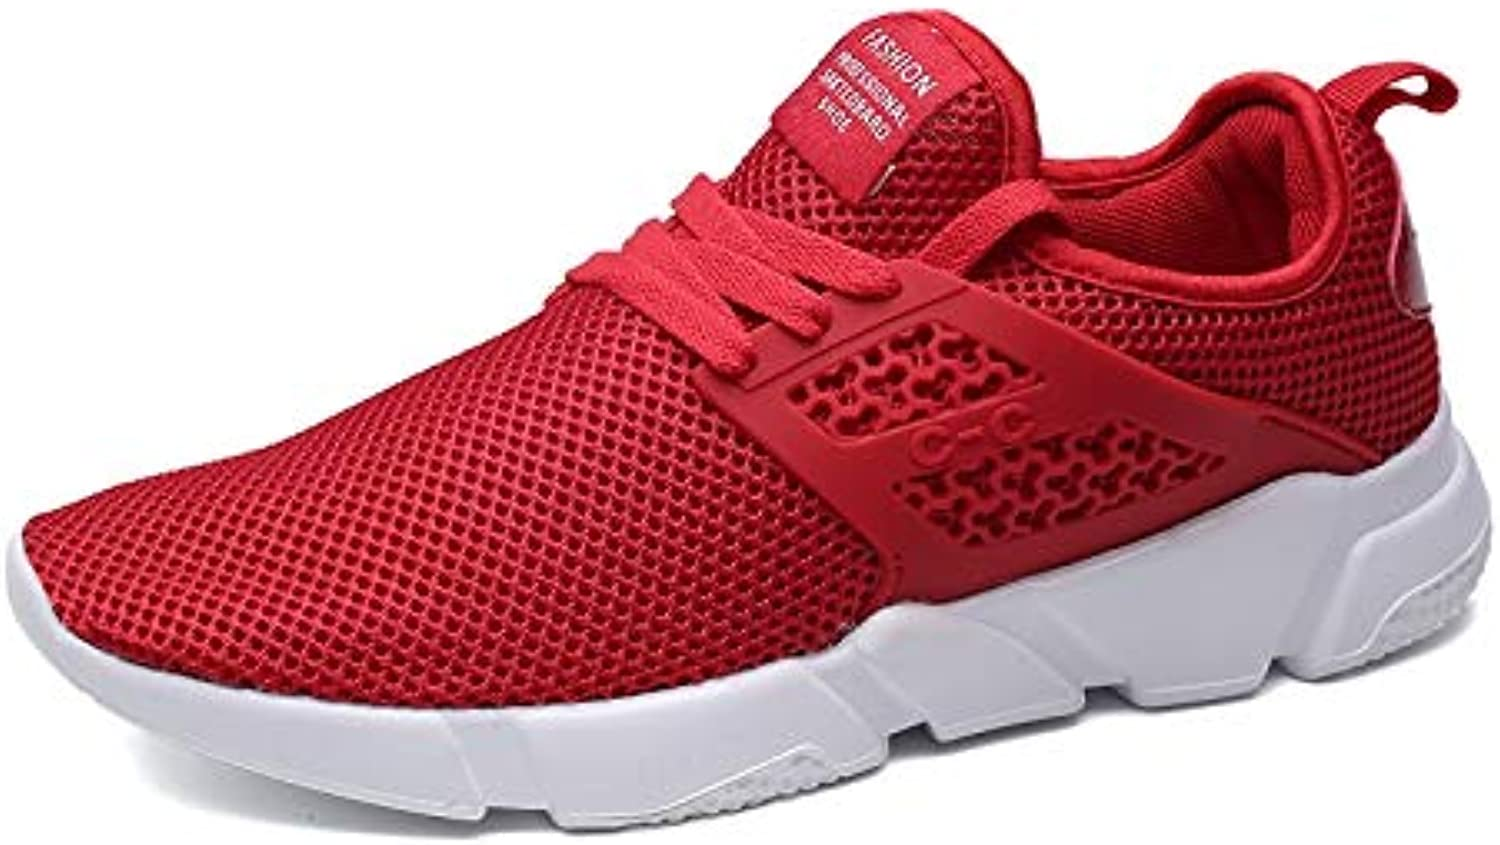 WDDGPZYDX teens Popular fashion Casual shoes Breathable soft Male sneakers adult autumn Non-slip Outsole Brand Comfortable Footwear